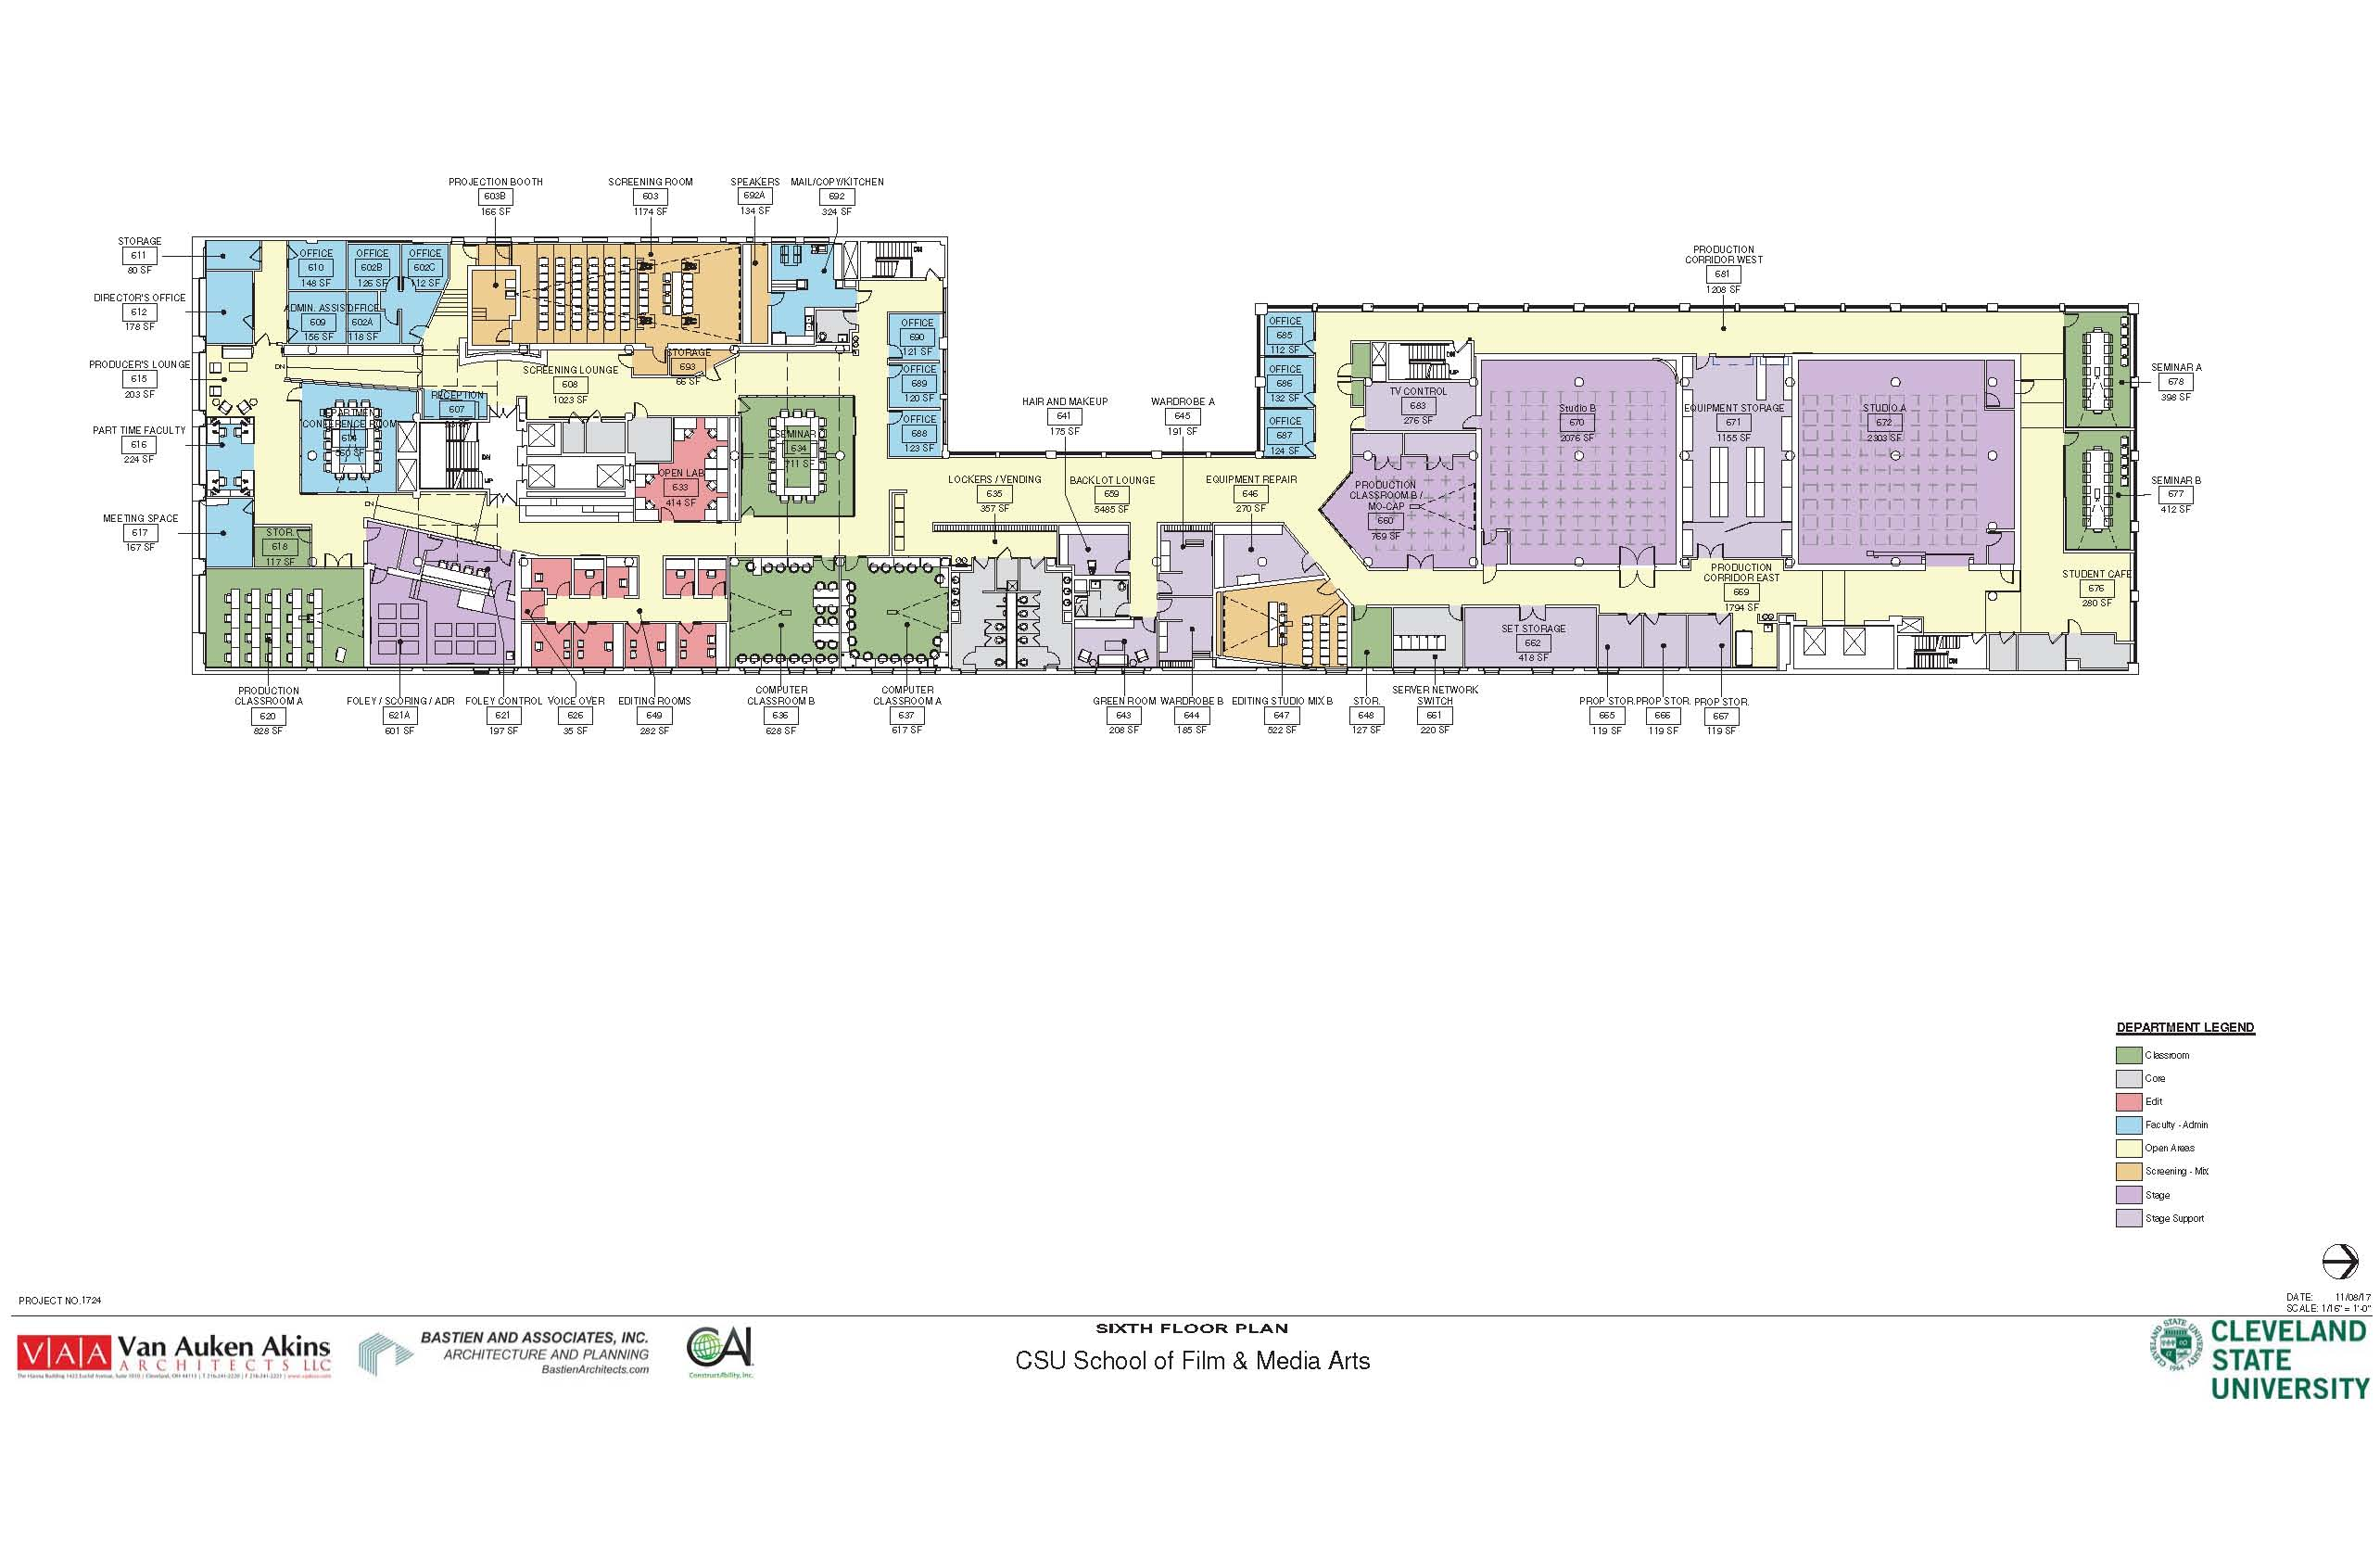 CSU_School of Film_Media Arts_Color Floor Plan_crop2.jpg